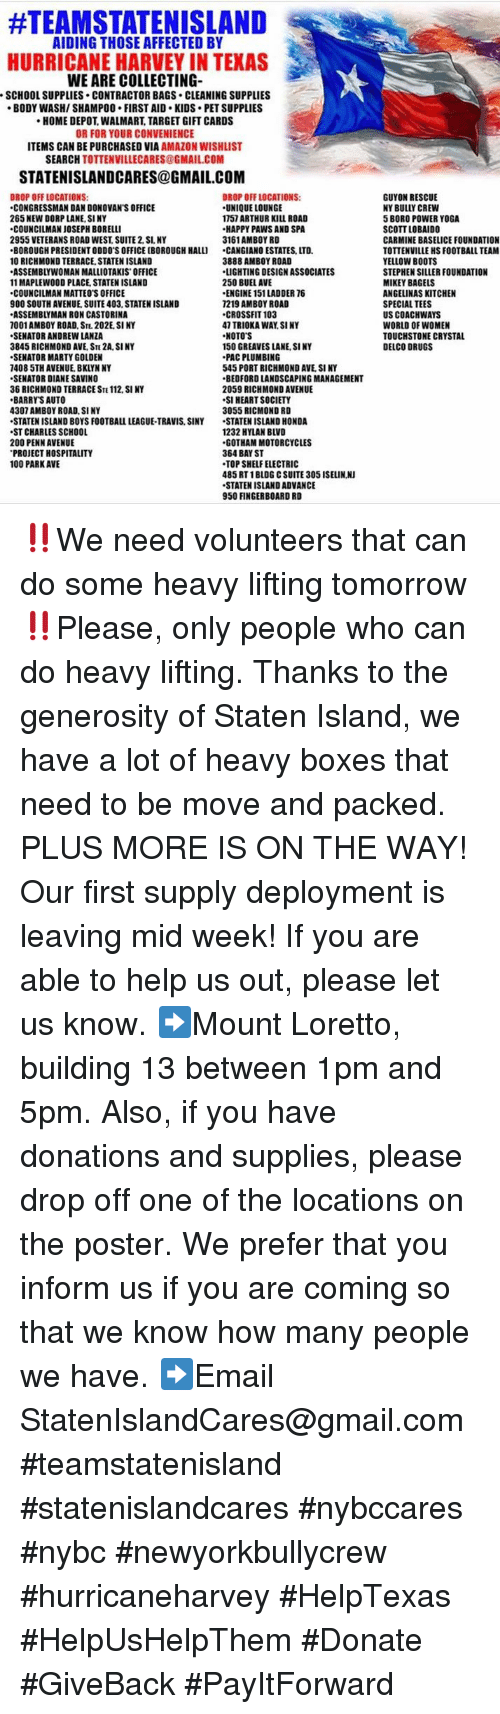 """posterization:  #TEAMSTATENSLAND    AIDING THOSE AFFECTED BY  HURRICANE HARVEY IN TEXAS  WE ARE COLLECTING  SCHOOL SUPPLIES. CONTRACTOR BAGS CLEANING SUPPLIES  BODY WASH/SHAMPOO FIRST AID. KIDS PET SUPPLIES  HOME DEPOT, WALMART, TARGET GIFT CARDS  OR FOR YOUR CONVENIENCE  ITEMS CAN BE PURCHASED VIA AMAZON WISHLIST  SEARCH TOTTENVILLECARES@GMAIL.COM  STATENISLANDCARES@GMAIL.COM  DROP OFF LOCATIONS:  UNIQUE LOUNGE  1757 ARTHUR KILL ROAD  HAPPY PAWS AND SPA  3161 AMBOY RD  .CANGIANO ESTATES, LTD.  3888 AMBOY ROAD  LIGHTING DESIGN ASSOCIATES  250 BUEL AVE  ENGINE 151 LADDER 76  7219 AMBOY ROAD  .CROSSFIT 103  47 TRIOKA WAY SI NY  NOTO'S  150 GREAVES LANE, SINY  PAC PLUMBING  545 PORT RICHMOND AVE, SI NY  BEOFORD LANDSCAPING MANAGEMENT  2059 RICHMOND AVENUE  SI HEART SOCIETY  3055 RICMOND RD  -STATEN ISLAND HONDA  1232 HYLAN BLVD  GOTHAM MOTORCYCLES  364 BAY ST  TOP SHELF ELECTRIC  485 RT 1BLOG C SUITE 305 ISELIN.N  STATEN ISLAND ADVANCE  950 FINGERBOARD RD  GUYON RESCUE  DROP OFF LOCATIONS  ·CONGRESSMAN DAN DONOVAN'S OFFICE  265 NEW DORP LANE,SINY  、COUNCILMAN JOSEPH BORELLI  2955 VETERANS ROAD WEST SUITE 2. SI, NY  """"BOROUGH PRESIDENT ODDO'S OFFICE [BOROUGH HALLI  10 RICHMOND TERRACE, STATEN ISLAND  ASSEMBLYWOMAN MALLIOTAKIS OFFICE  11 MAPLEWOOD PLACE, STATEN ISLAND  COUNCILMAN MATTEO'S OFFICE  900 SOUTH AVENUE, SUITE 403, STATEN ISLAND  ASSEMBLYMAN RON CASTORINA  001AMBOY ROAD, STE. 202E. SI NY  SENATOR ANDREW LANZA  3845 RICHMOND AVE, STE 2A, SINY  SENATOR MARTY GOLDEN  7408 5TH AVENUE, BKLYN NY  SENATOR DIANE SAVINO  36 RICHMOND TERRACE STE 112, SI NY  BARRY'S AUTO  4307 AMBOY ROAD, SI NY  ·STATEN ISLAND BOYS FOOTBALL LEAGUE-TRAVIS, SINY  ST CHARLES SCHOOL  200 PENN AVENUE  PROJECT HOSPITALITY  100 PARK AVE  Y BULLY CREW  5 BORO POWER YOGA  SCOTT LOBAIDO  CARMINE BASELICE FOUNDATION  TOTTENVILLE HS FOOTBALL TEAM  YELLOW BOOTS  STEPHEN SILLER FOUNDATION  MIKEY BAGELS  ANGELINAS KITCHEN  SPECIAL TEES  US COACHWAYS  WORLD OF WOMEN  TOUCHSTONE CRYSTAL  DELCO DRUGS ‼️We n"""